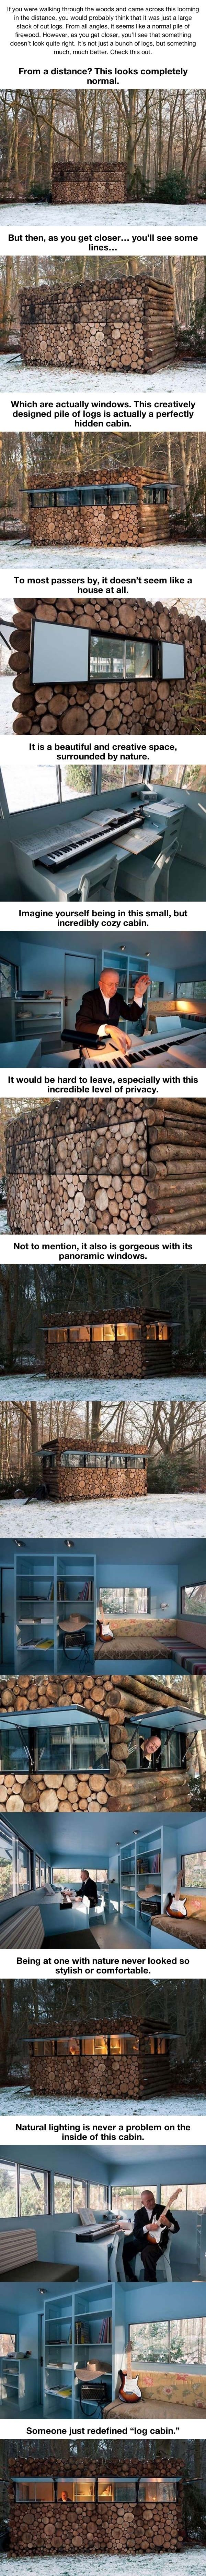 Redefining the meaning of log cabin